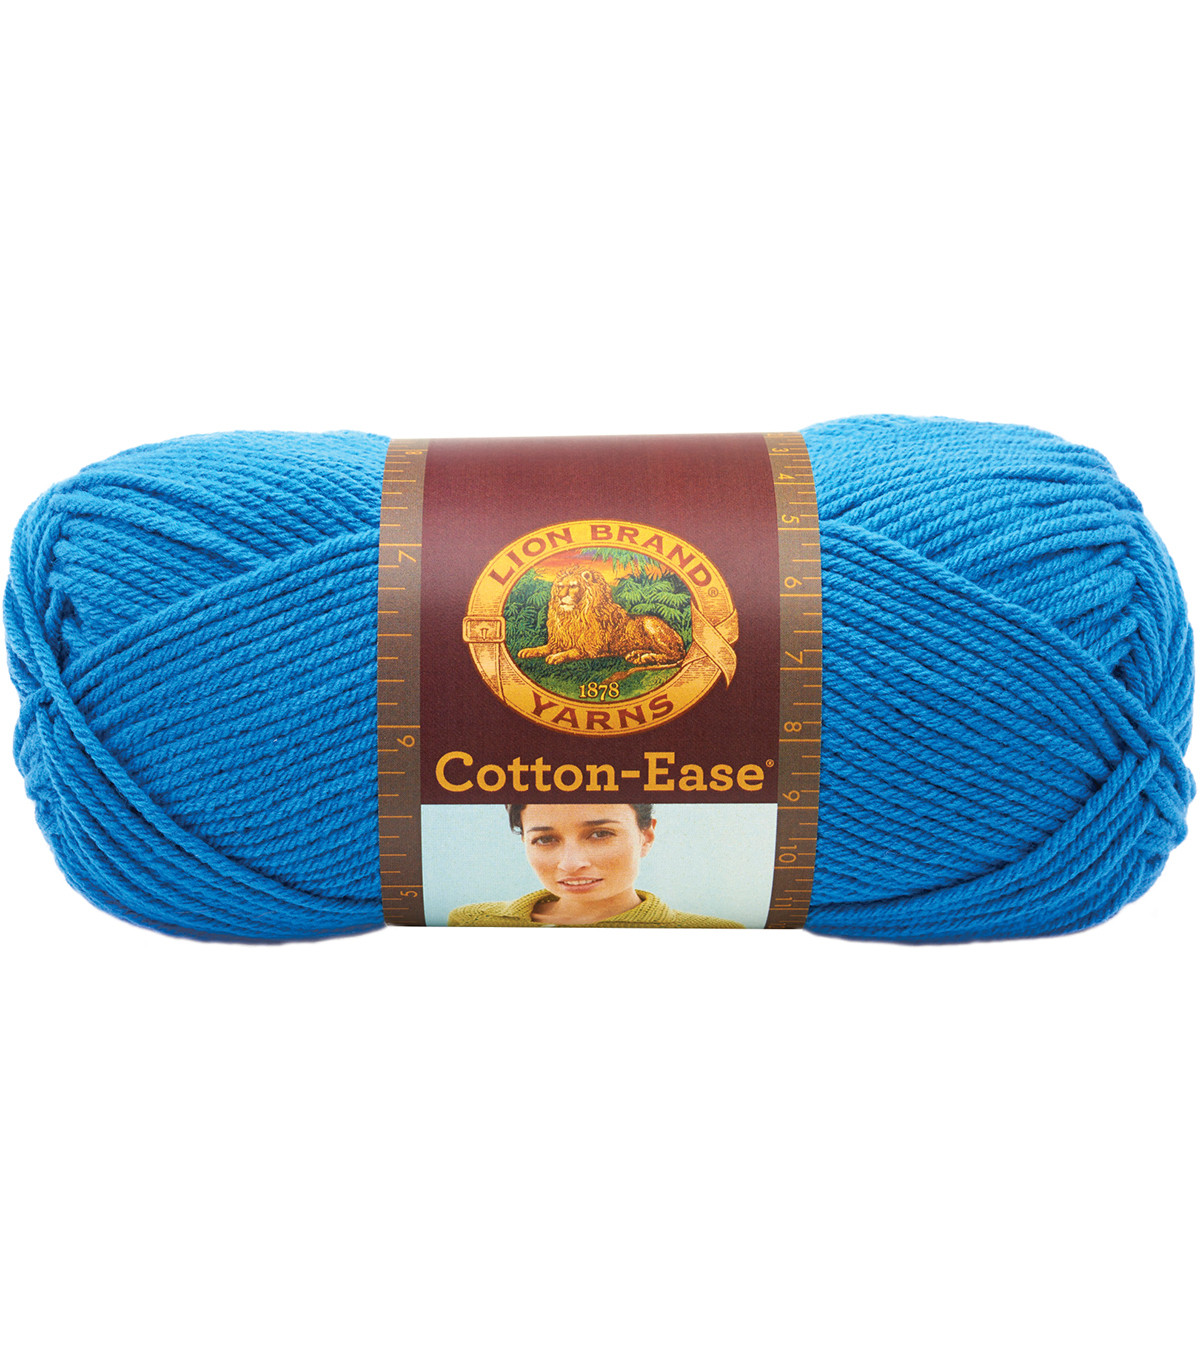 Lion Brand Cotton Ease Yarns at Joann